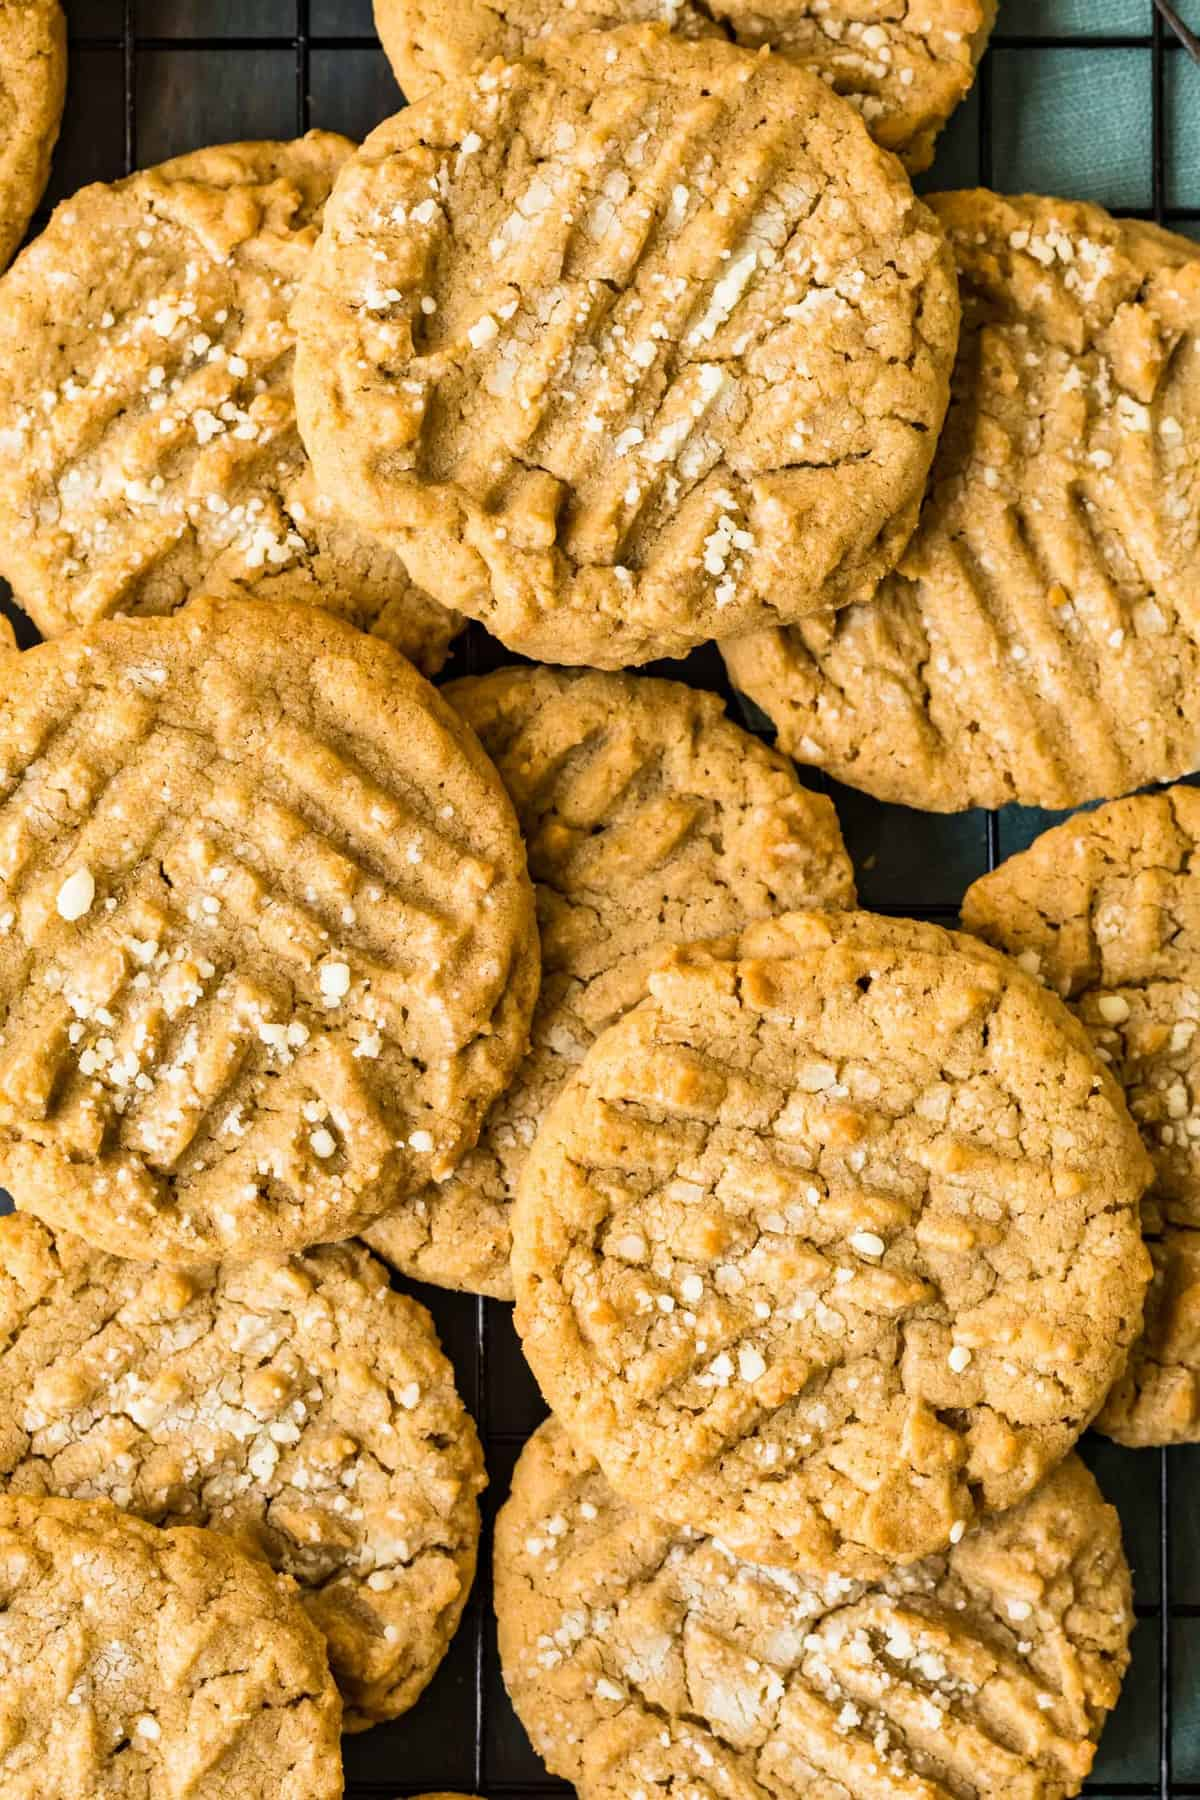 A pile of peanut butter cookies on a cooling rack